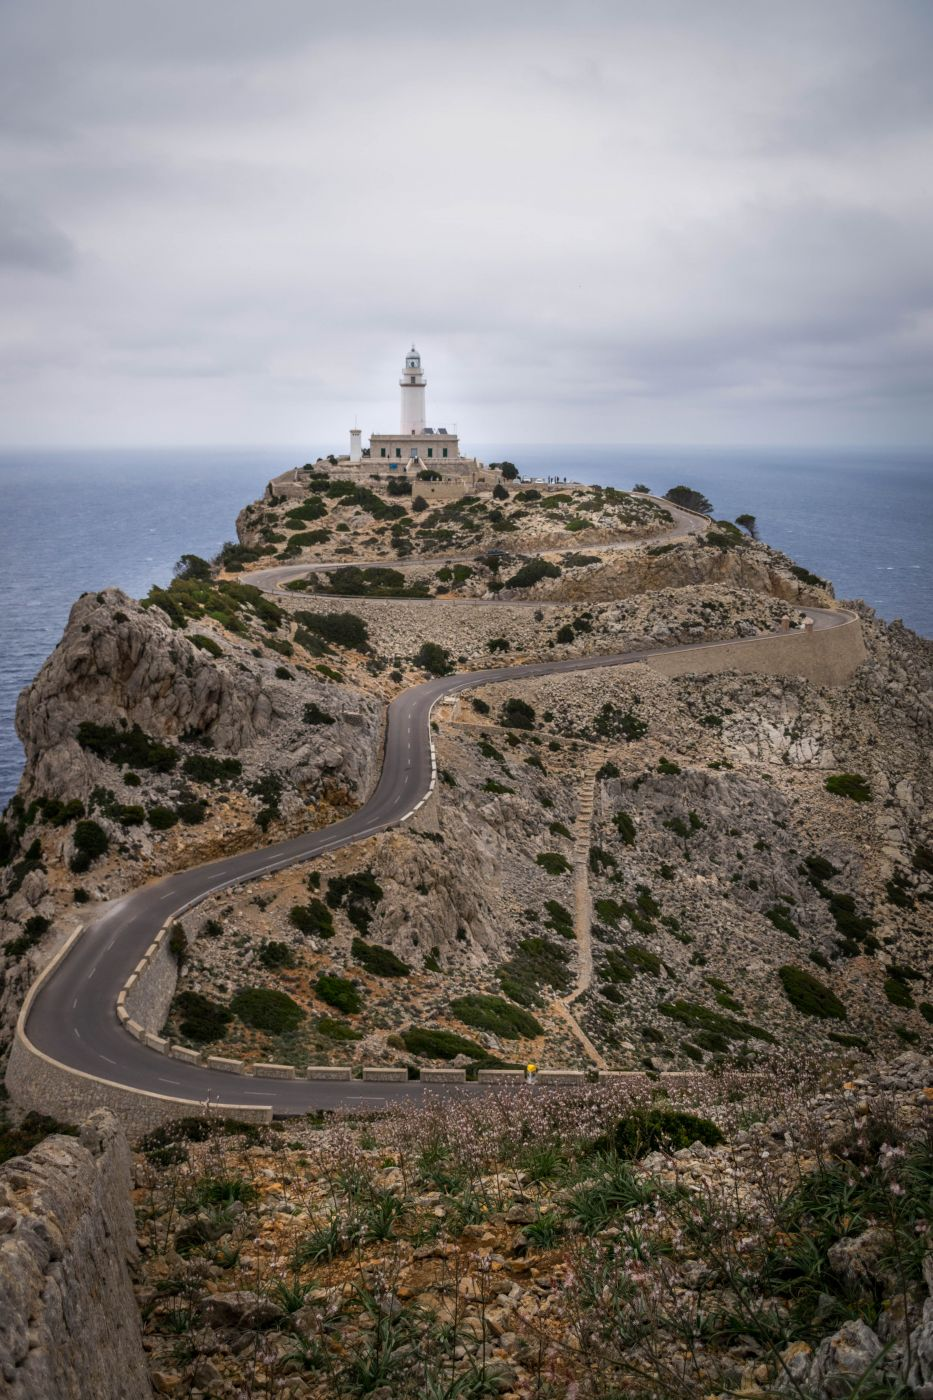 Lighthouse of the Formentor Cap, Mallorca, Spain